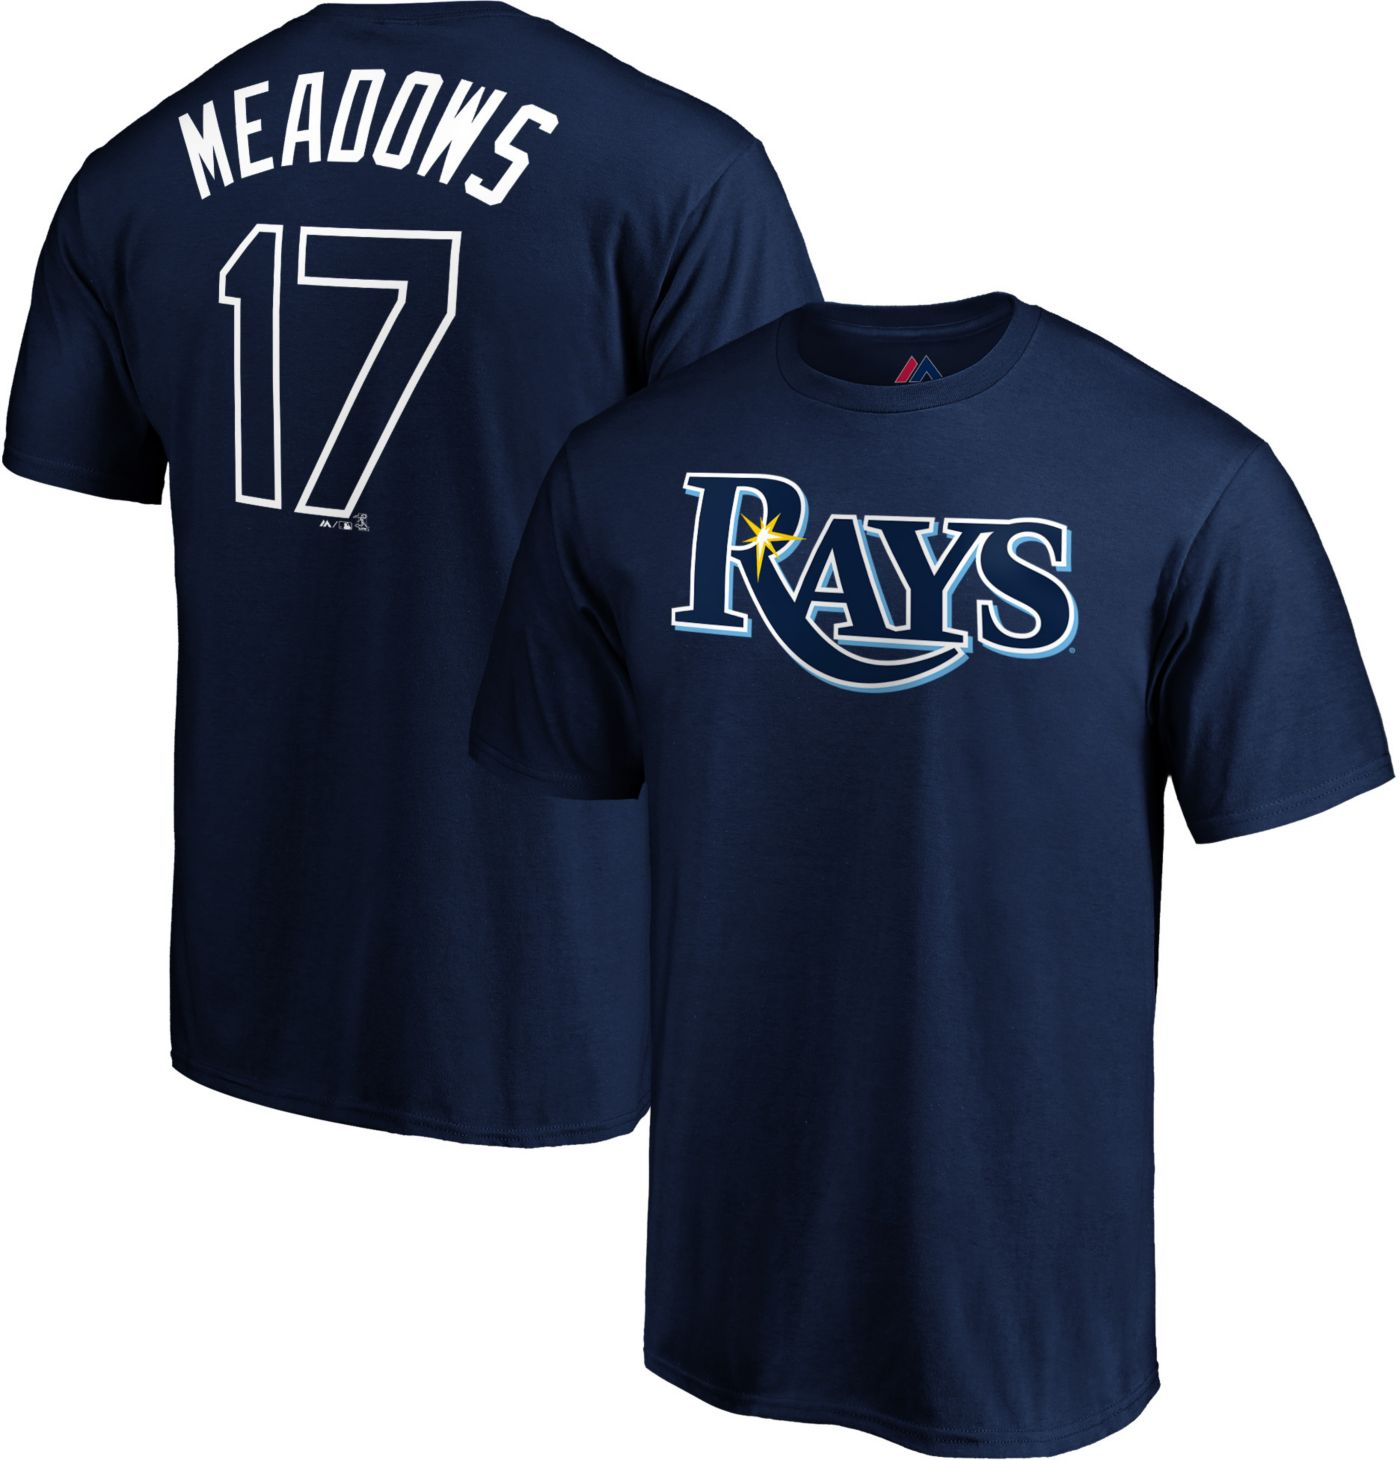 Majestic Youth Tampa Bay Rays Austin Meadows #17 Navy T-Shirt